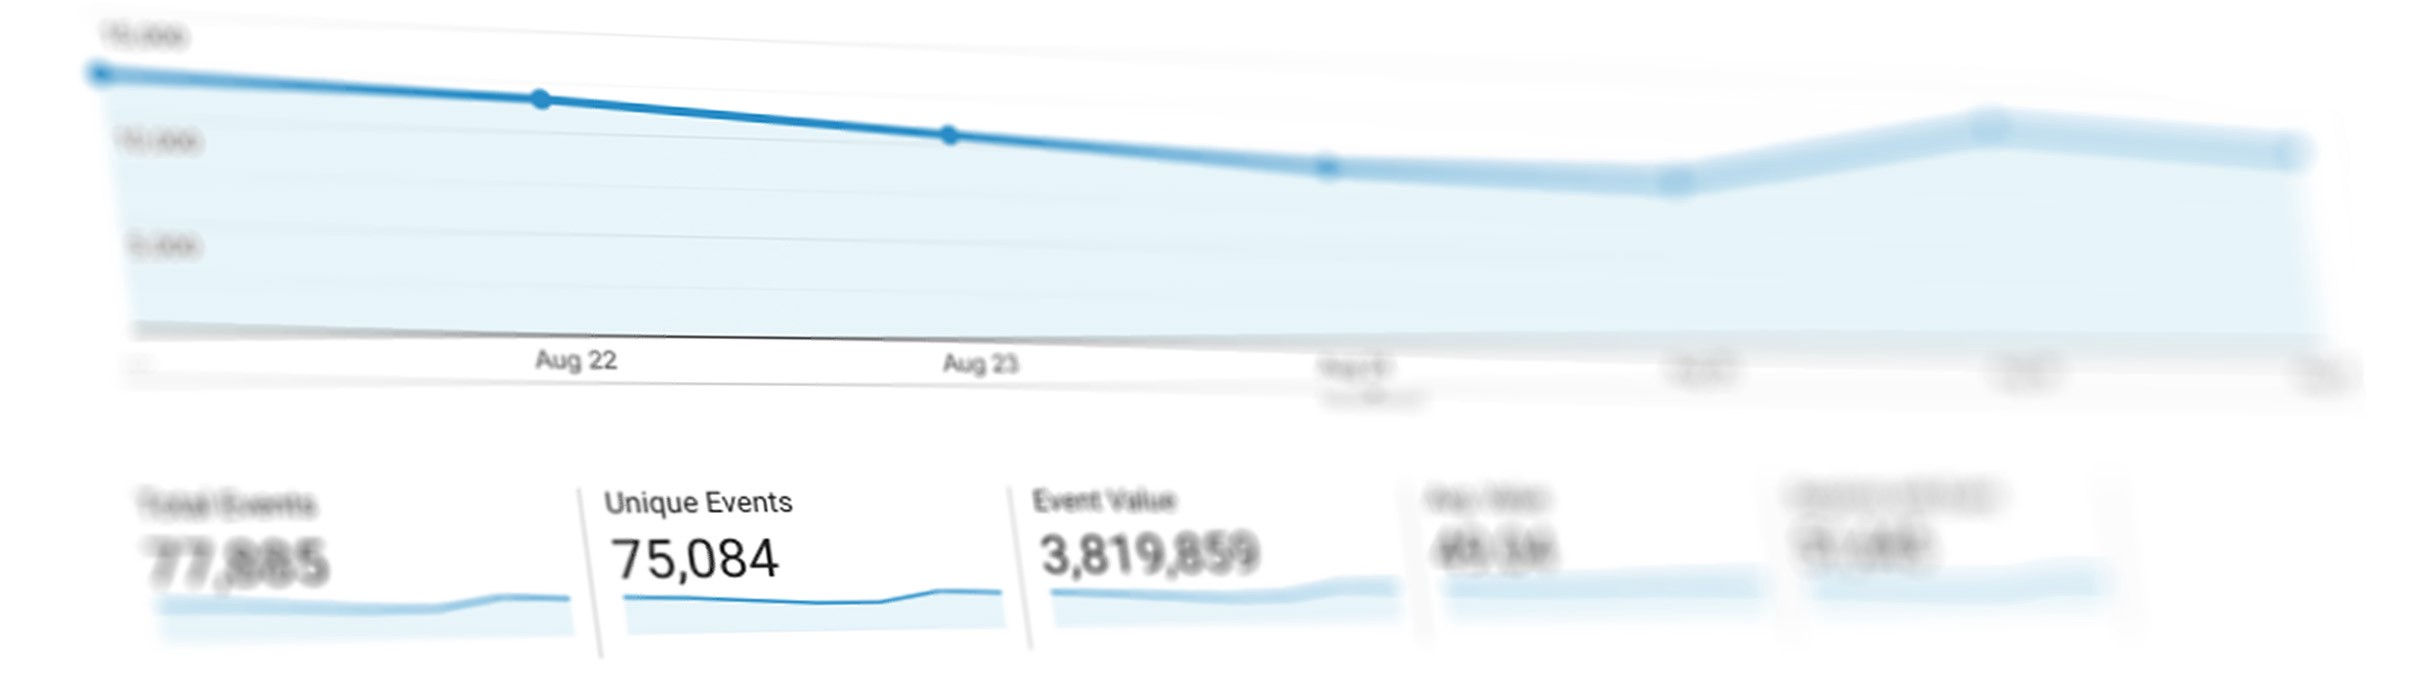 August 4 2020 Events.Tracking Custom Events With Google Analytics In 2020